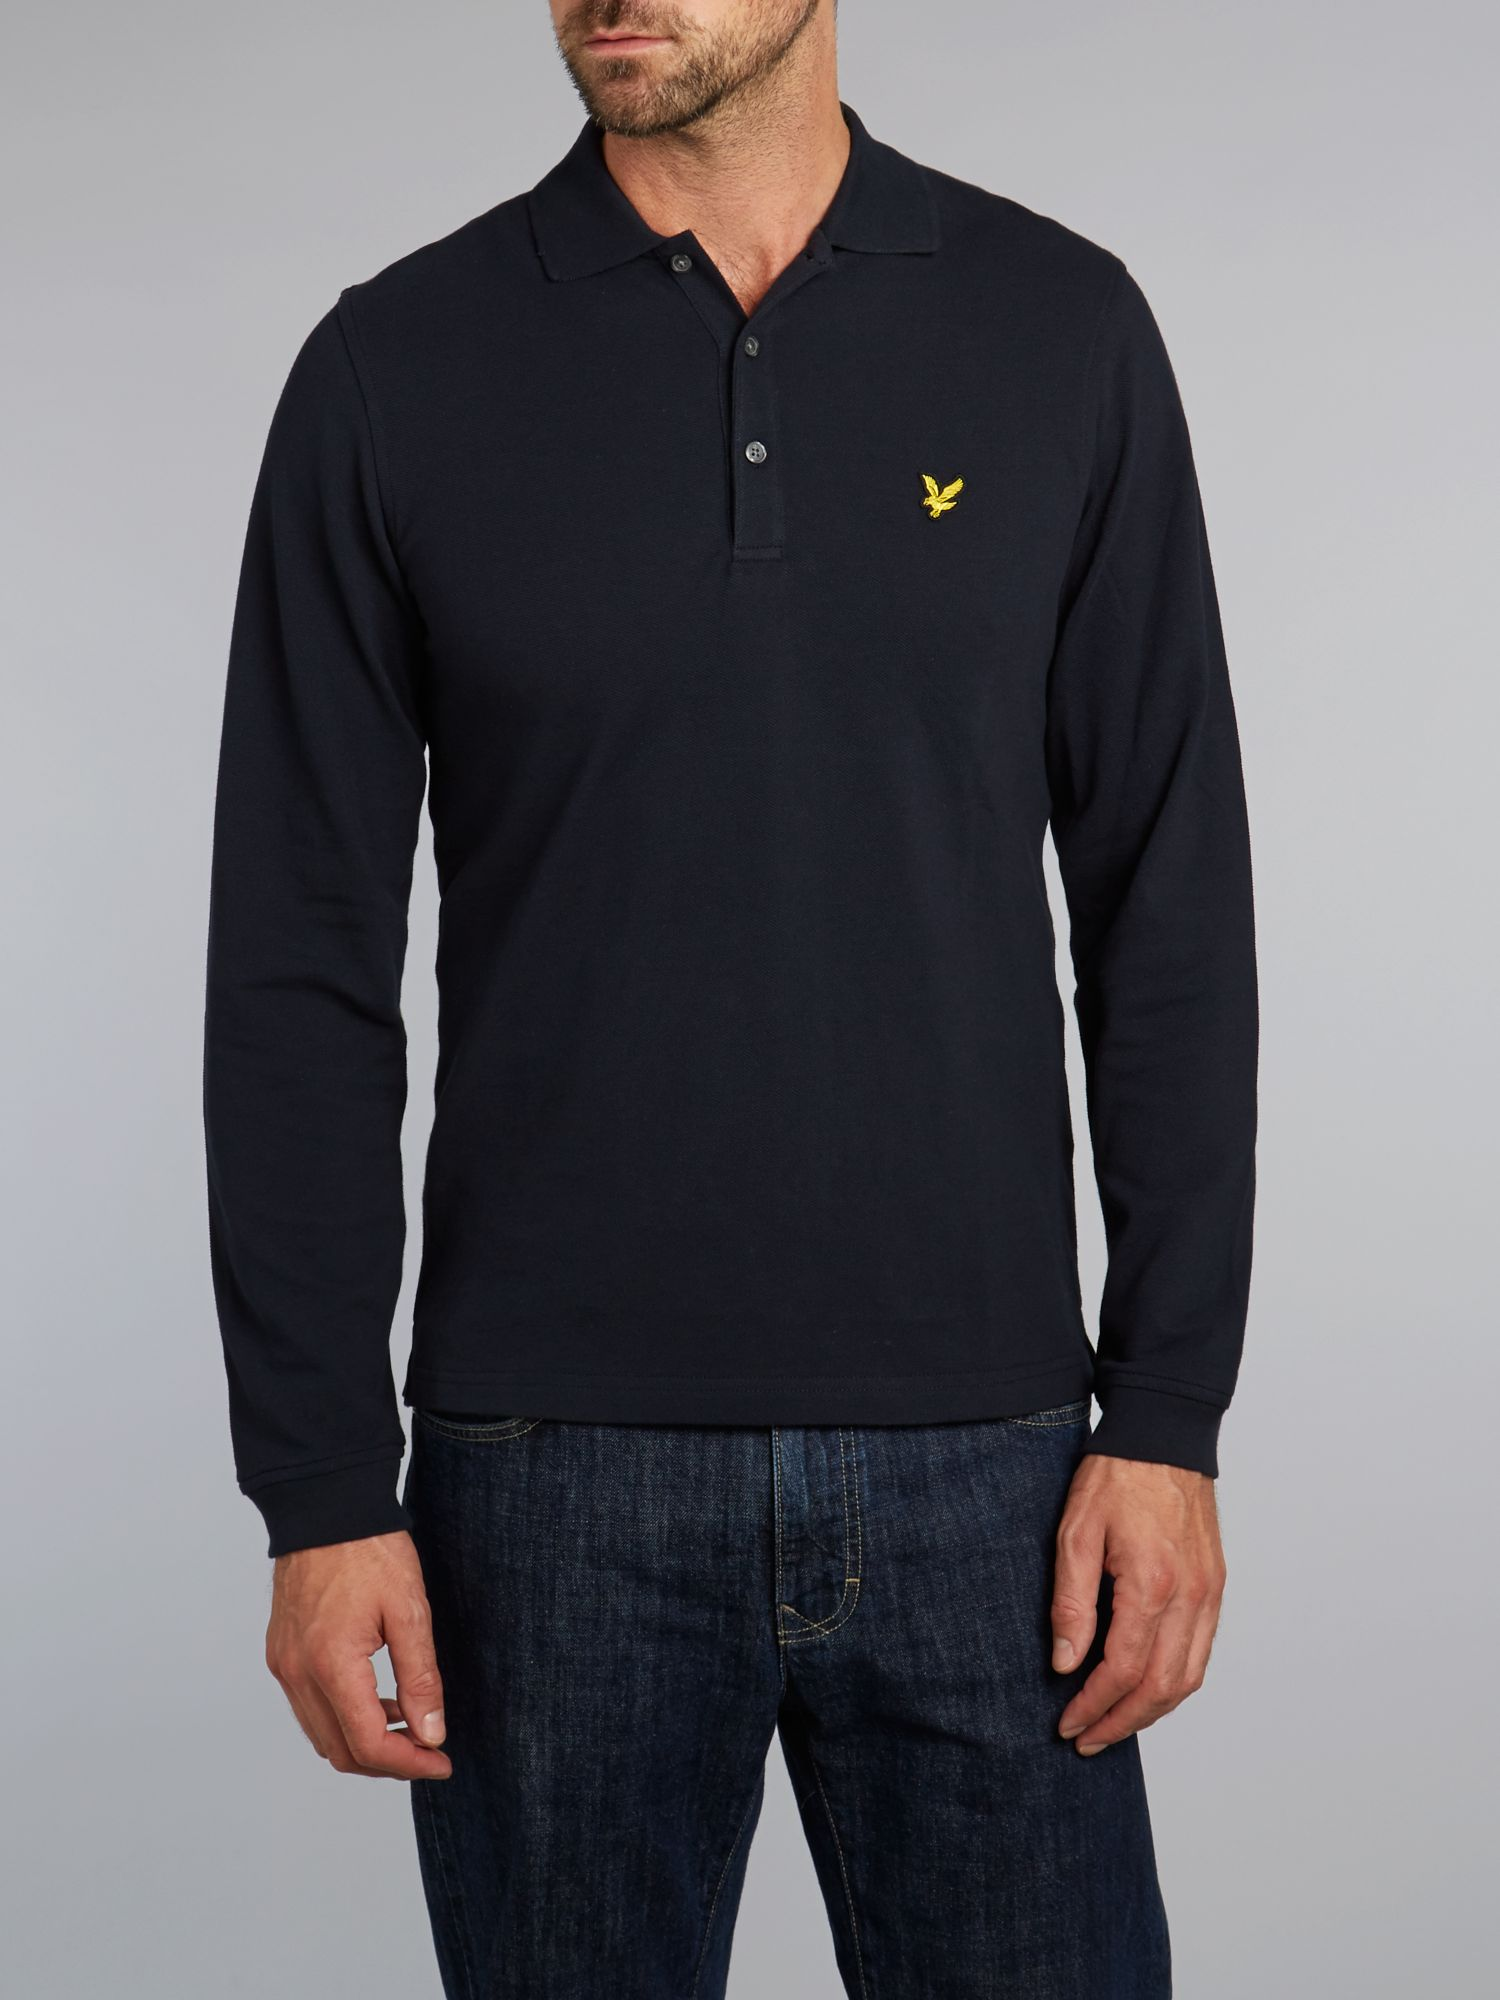 Regular fit long sleeve polo shirt